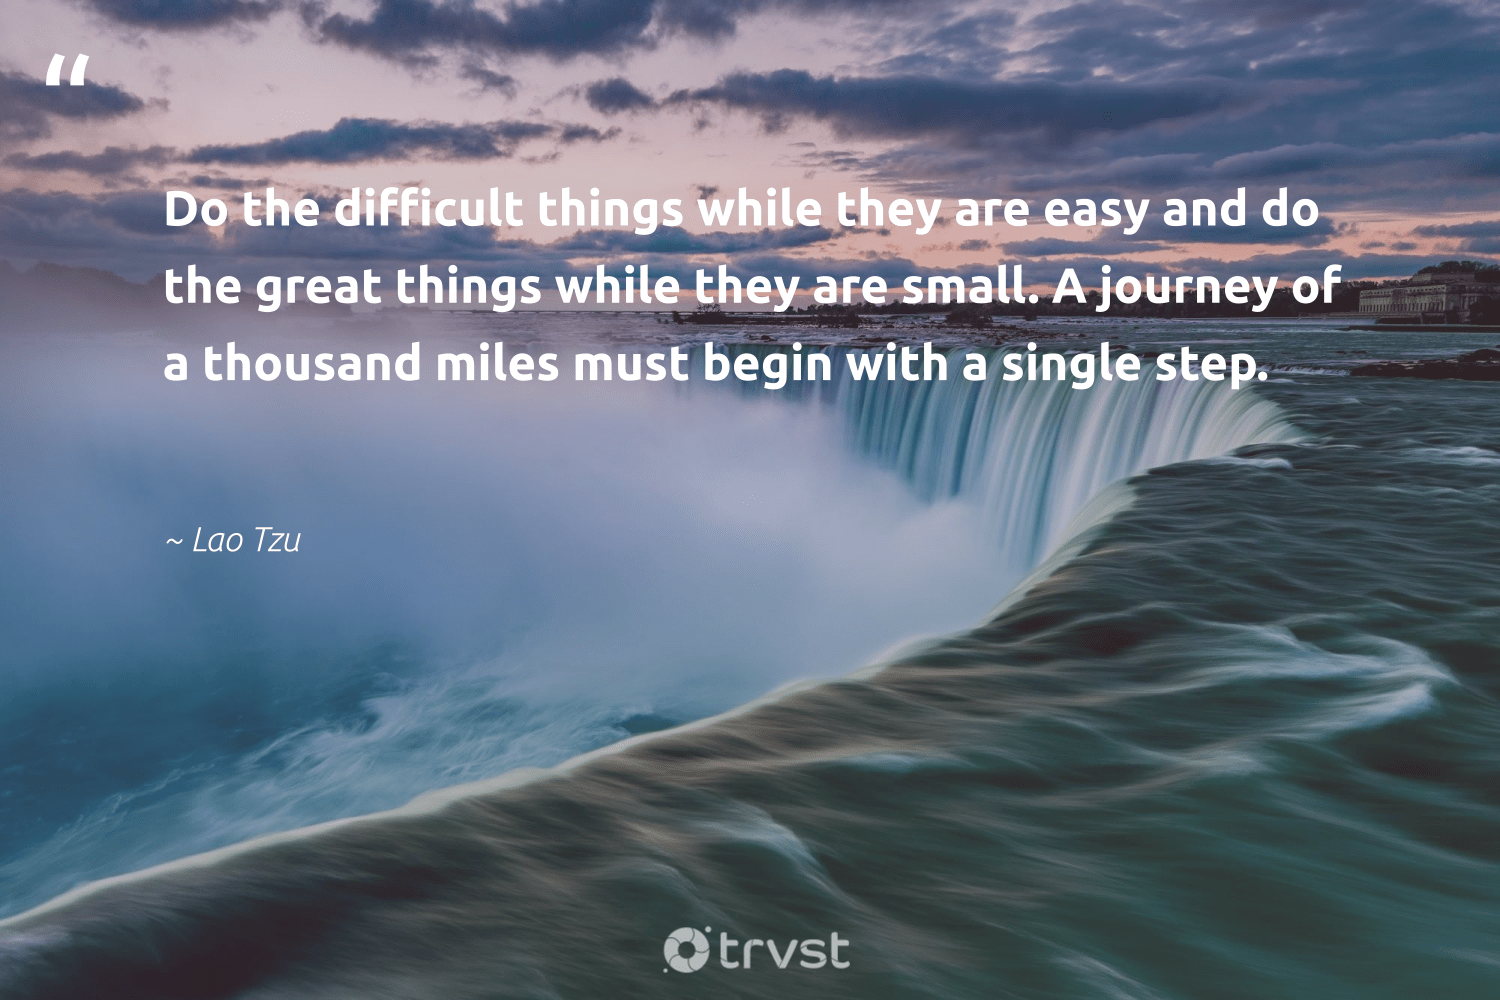 """""""Do the difficult things while they are easy and do the great things while they are small. A journey of a thousand miles must begin with a single step.""""  - Lao Tzu #trvst #quotes #begreat #dogood #nevergiveup #socialchange #softskills #planetearthfirst #futureofwork #socialimpact #bethechange #collectiveaction"""